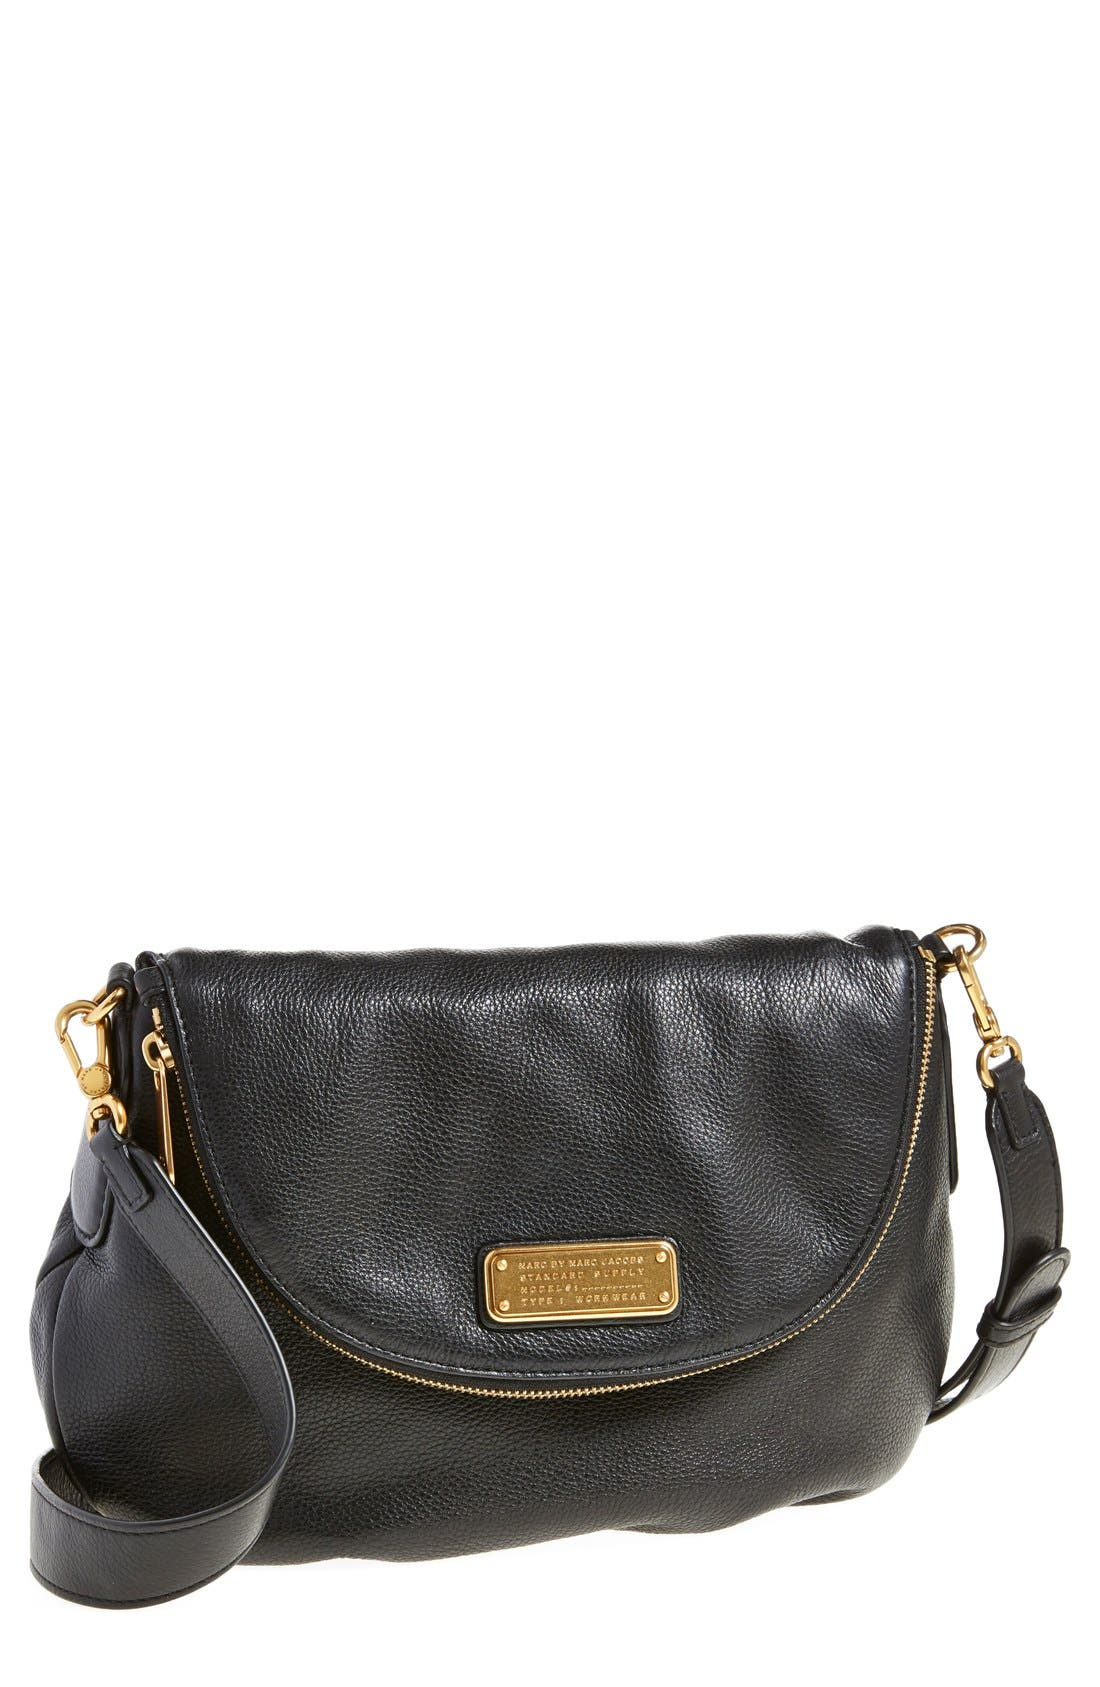 Main Image - MARC BY MARC JACOBS 'New Q - Natasha' Crossbody Bag